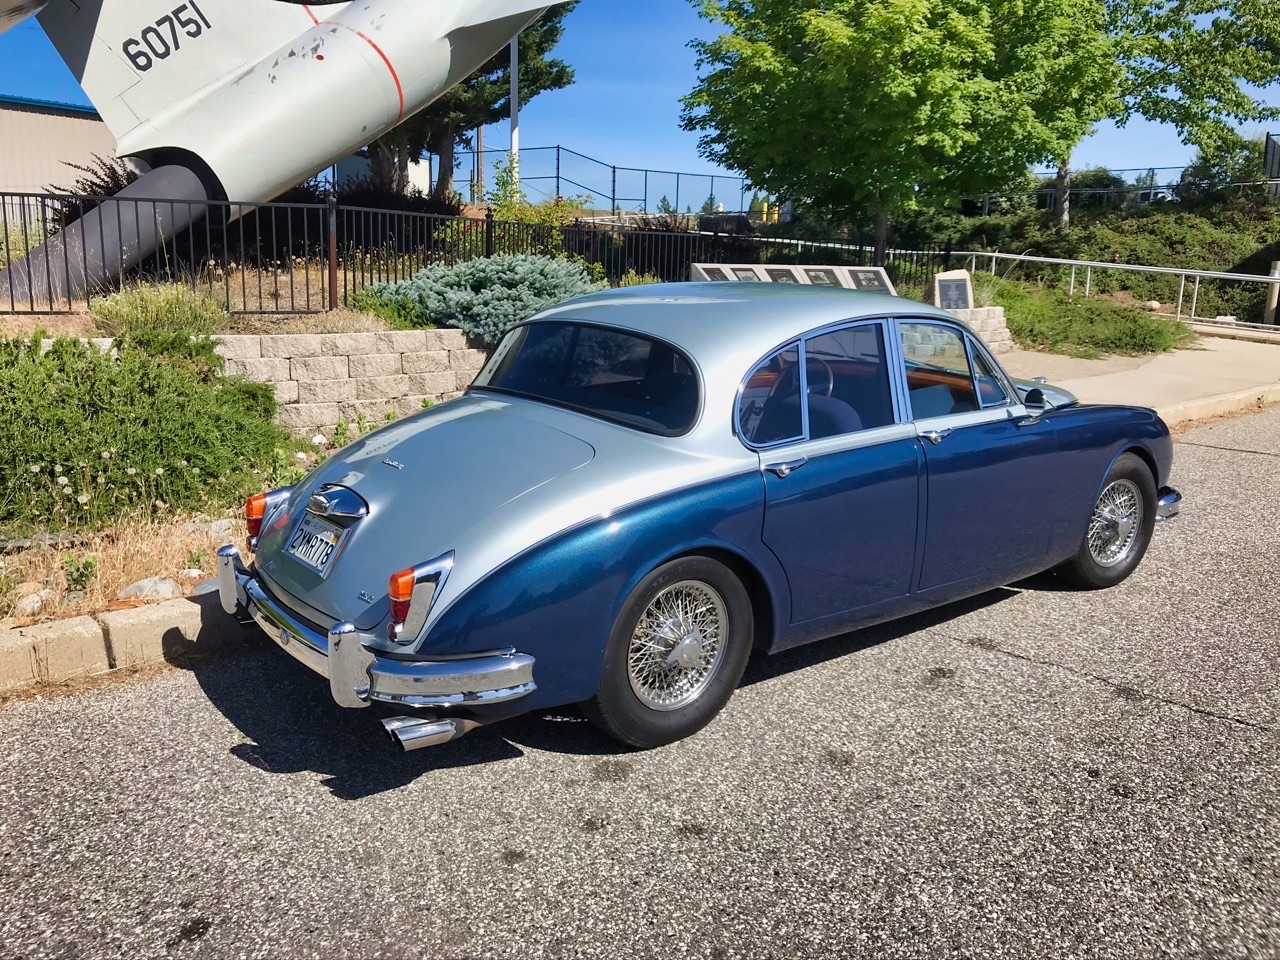 '61 Jaguar Mk II - Roots and outlaw en V8 ! 3